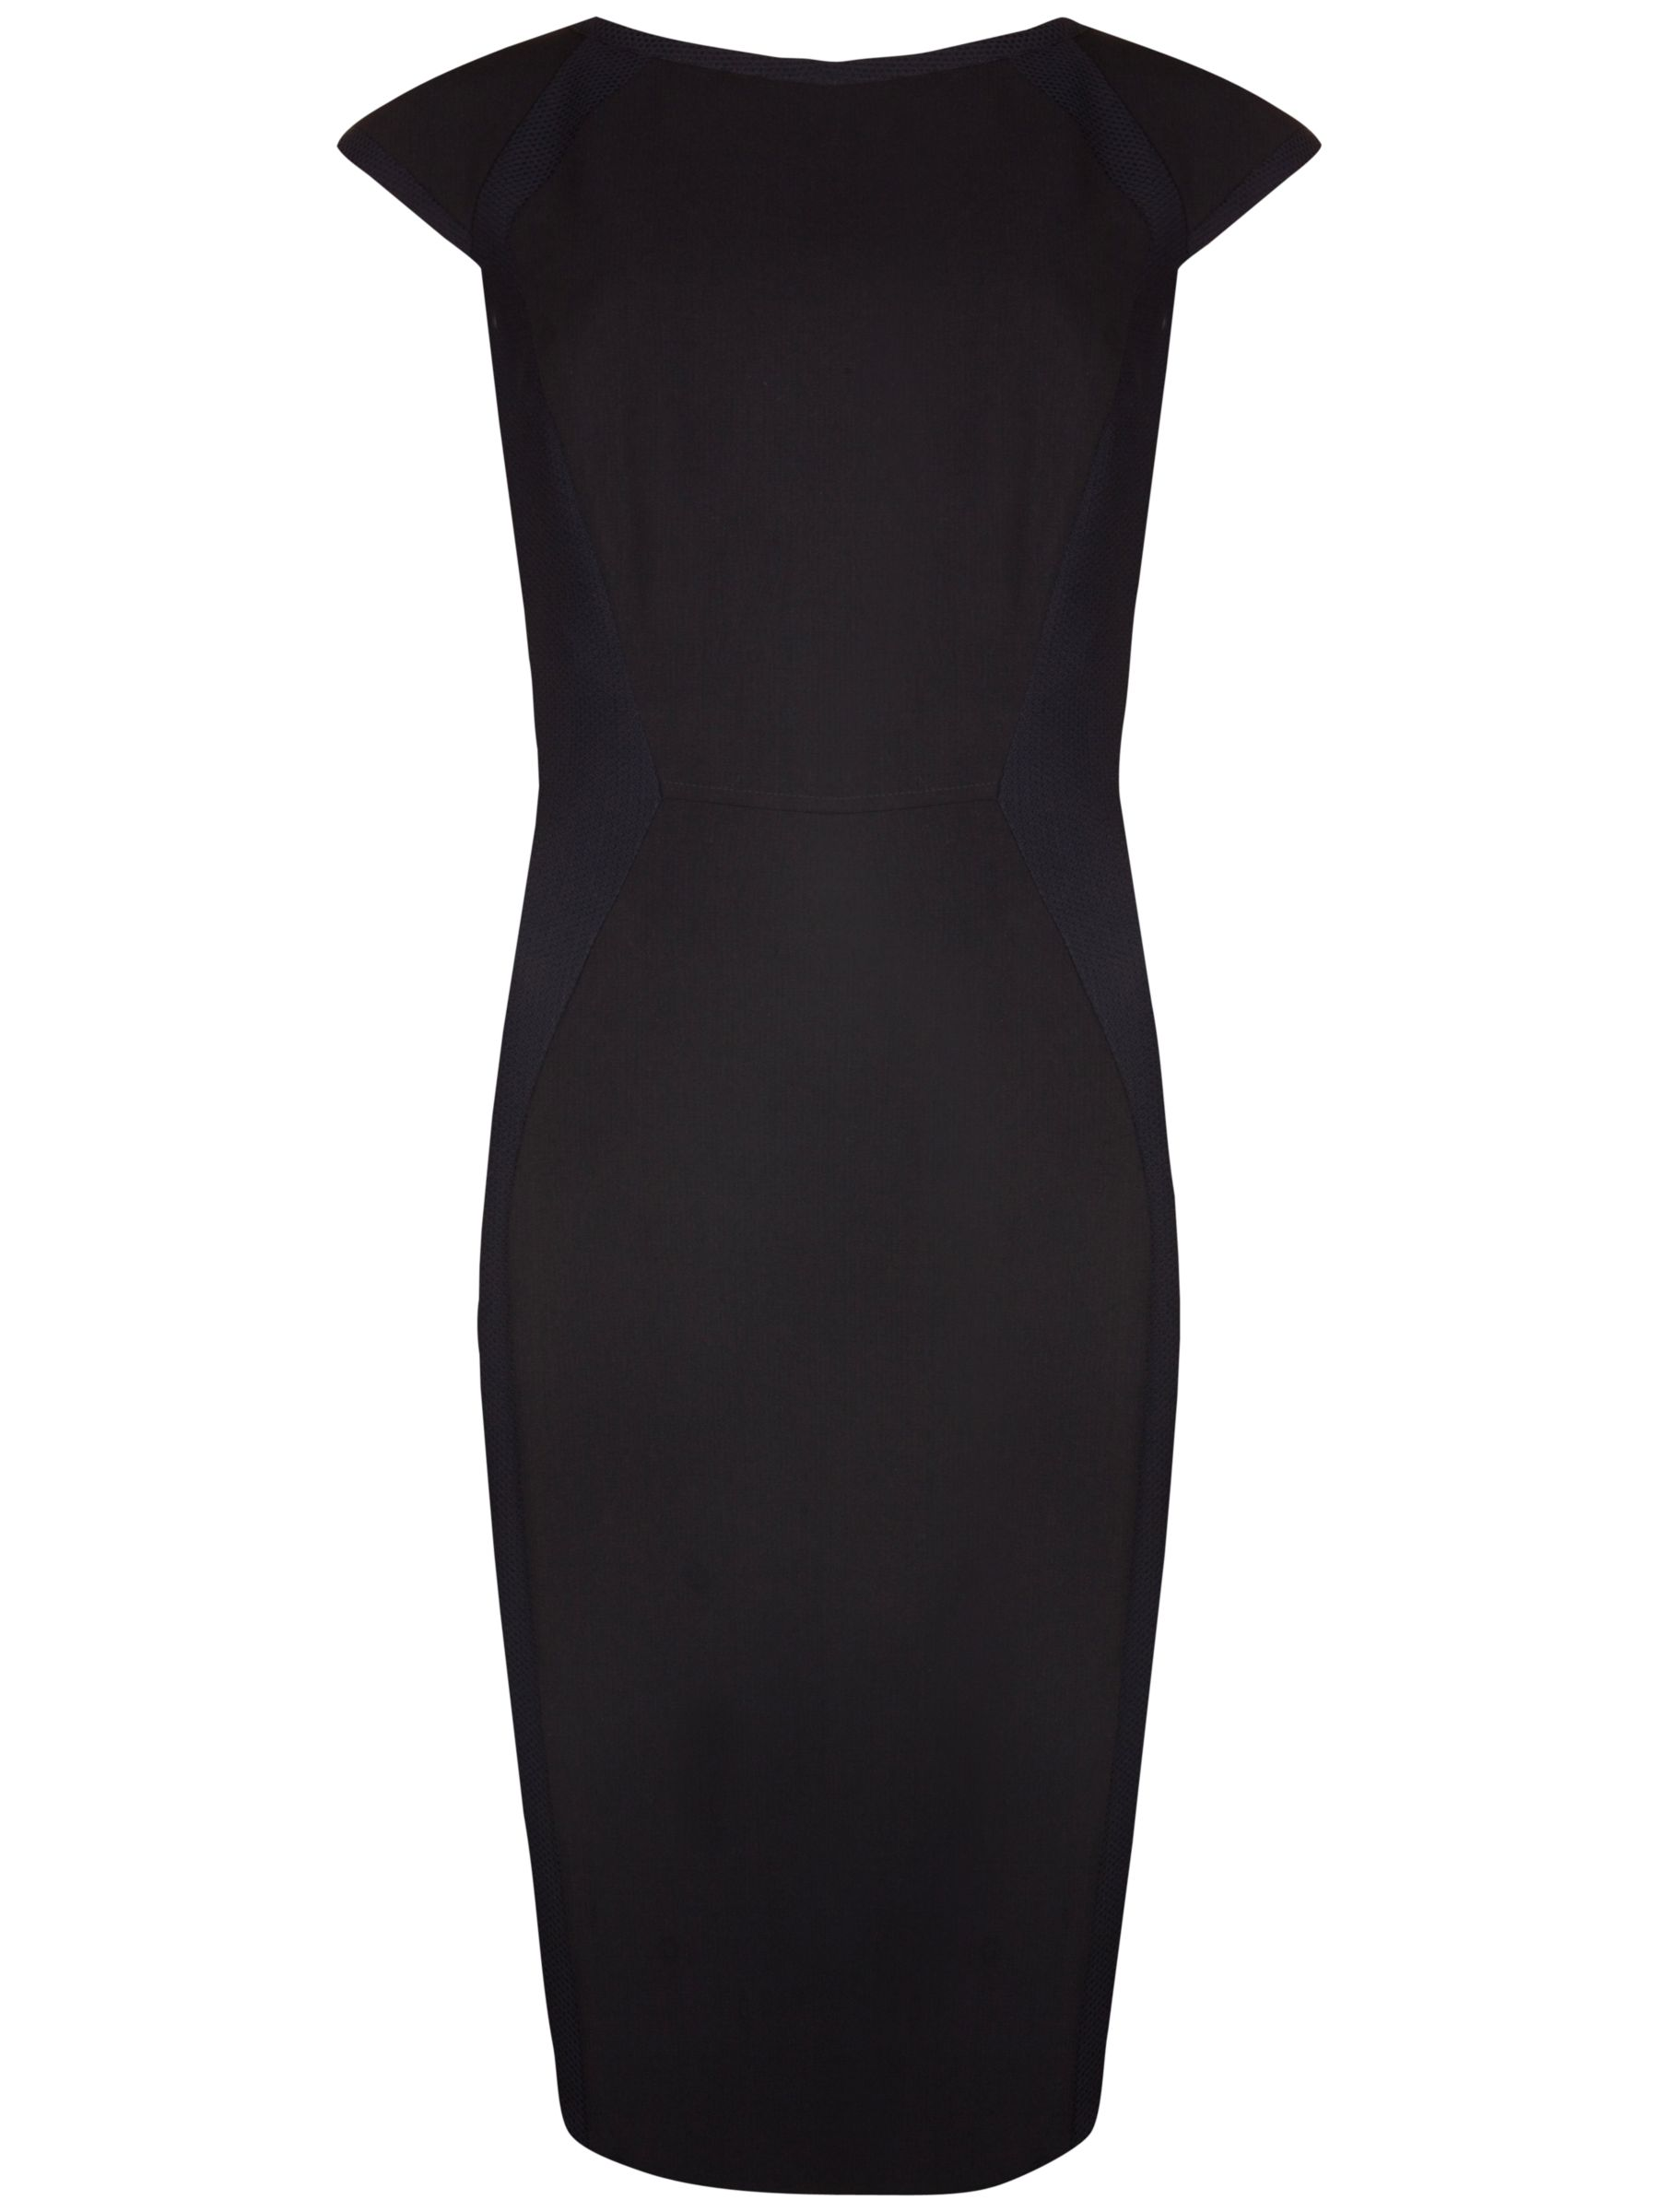 ted baker contrast texture panelled dress black, ted, baker, contrast, texture, panelled, dress, black, ted baker, 1|2, clearance, womenswear offers, womens dresses offers, women, womens dresses, special offers, fashion magazine, womenswear, men, brands l-z, 1631365